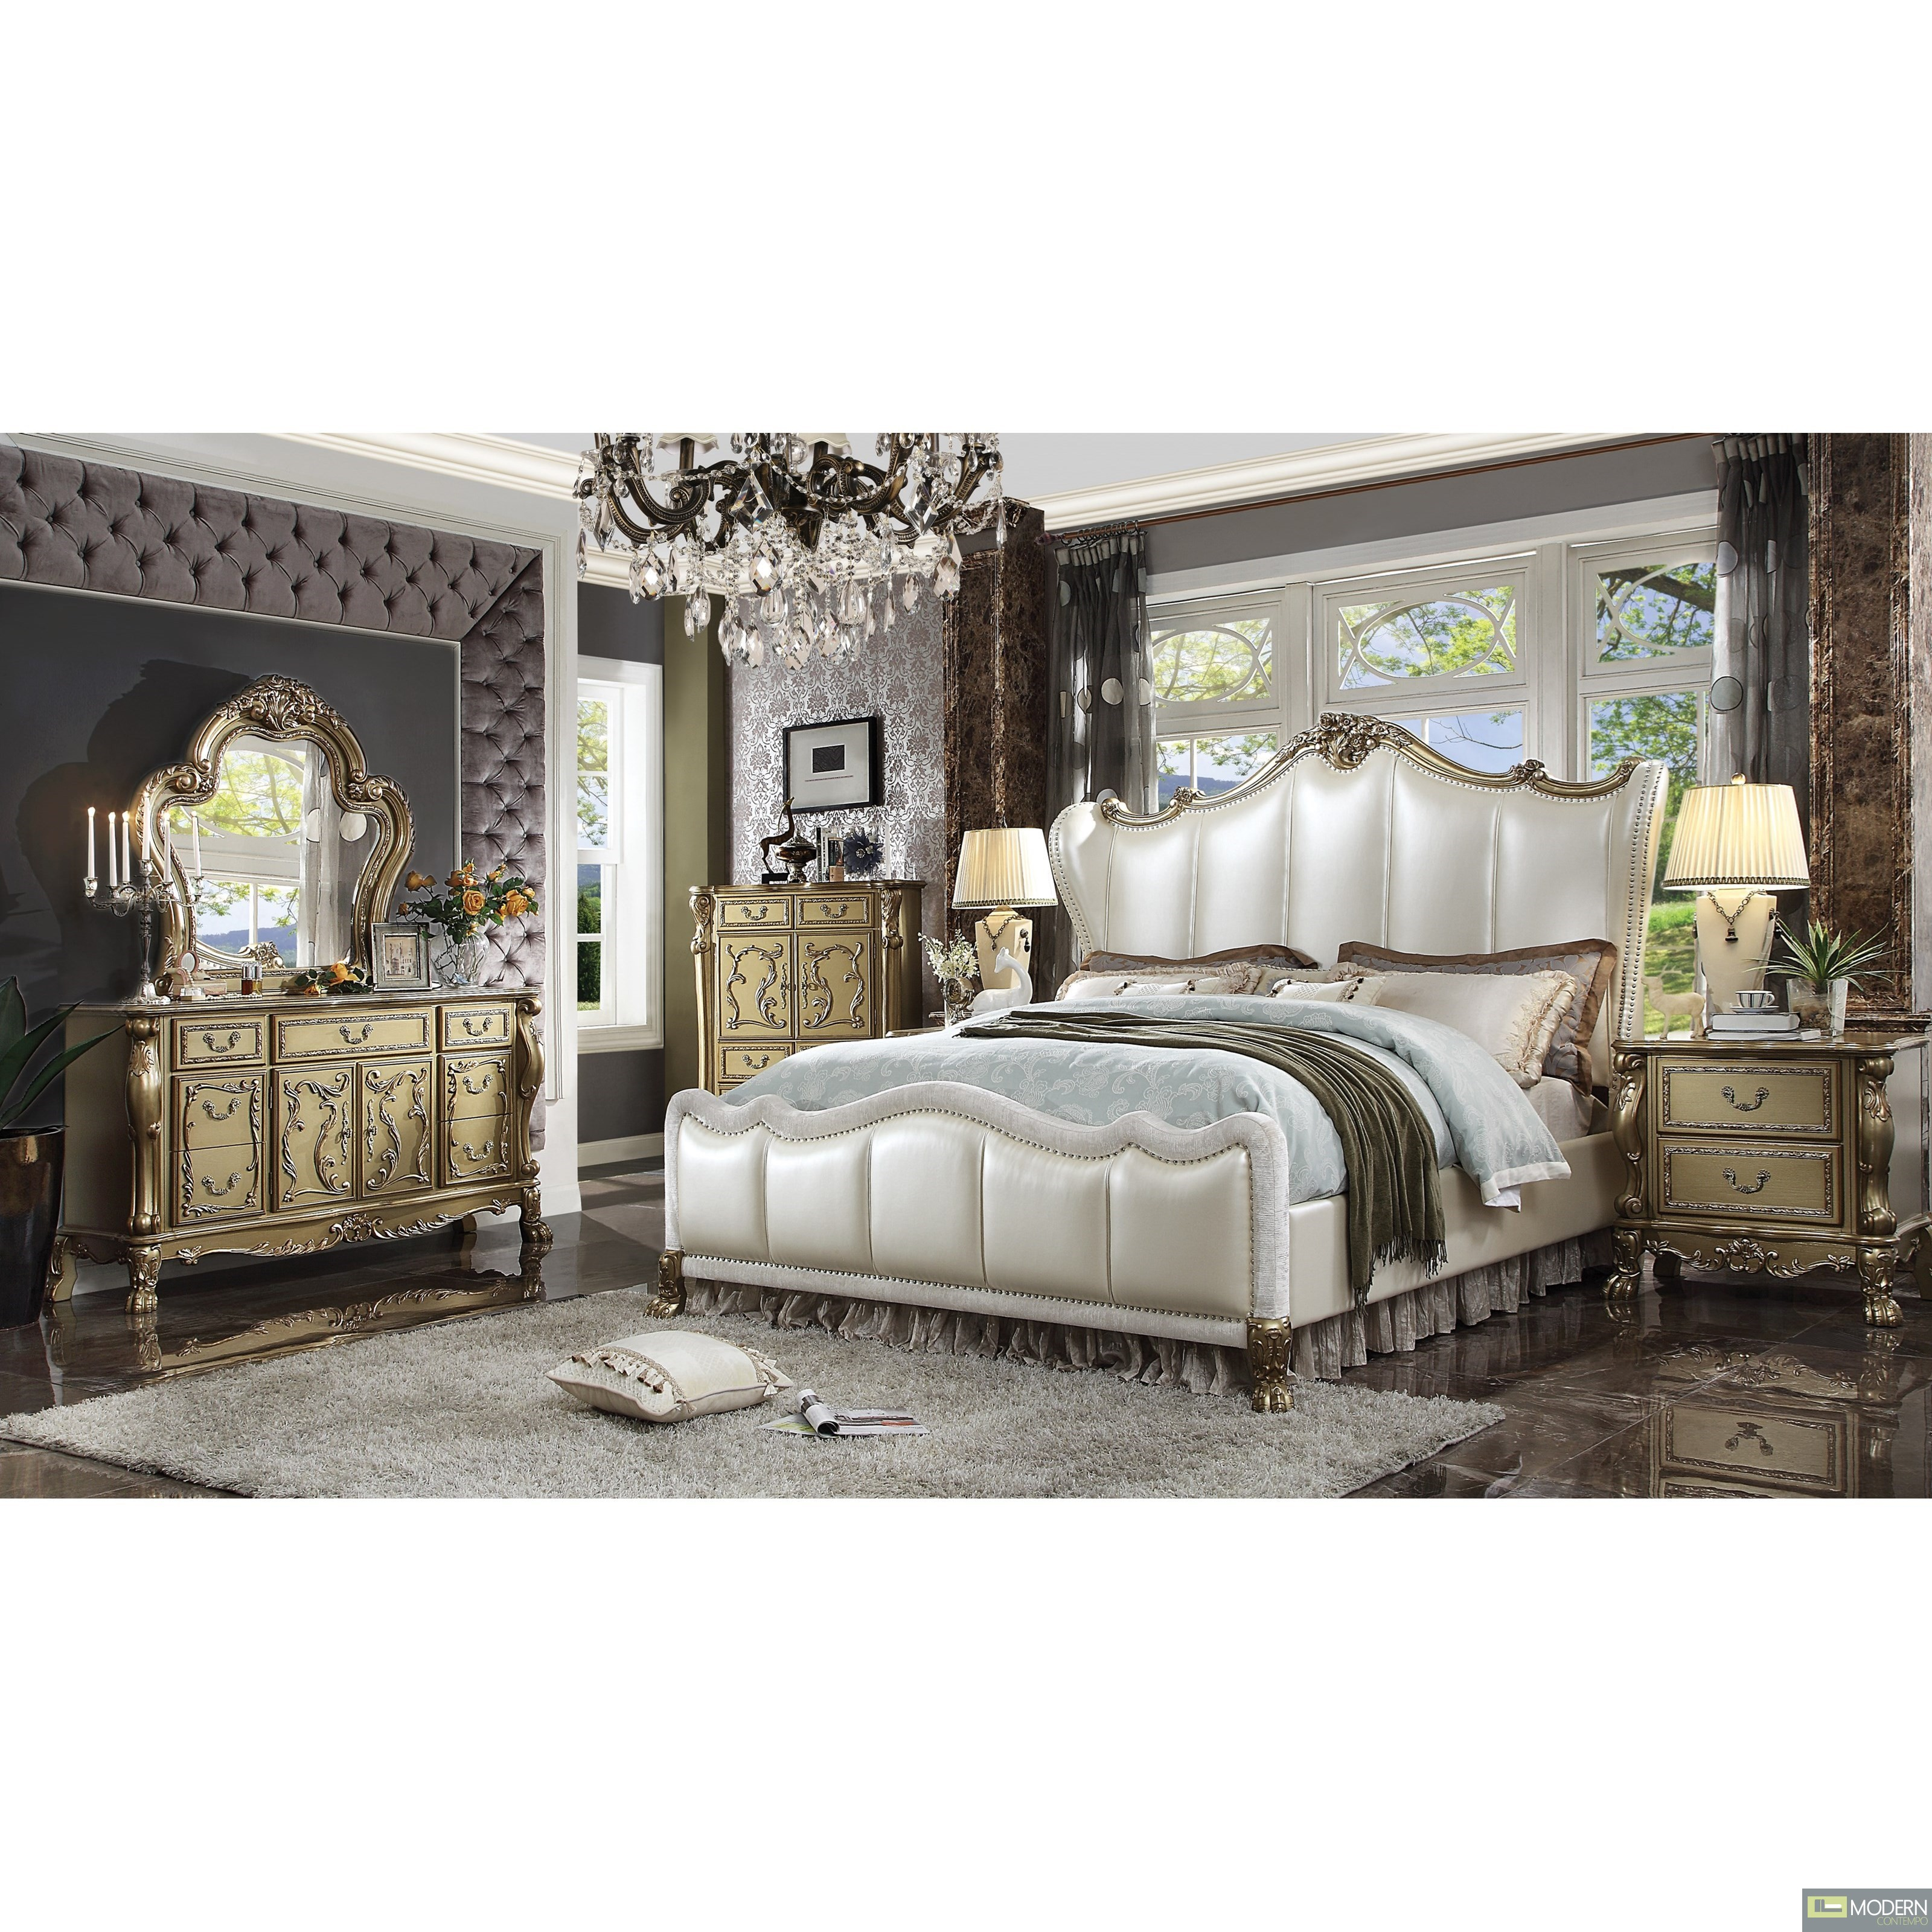 Luxury Champagne PU leather Gold Patina Finish with Velvet Bed.